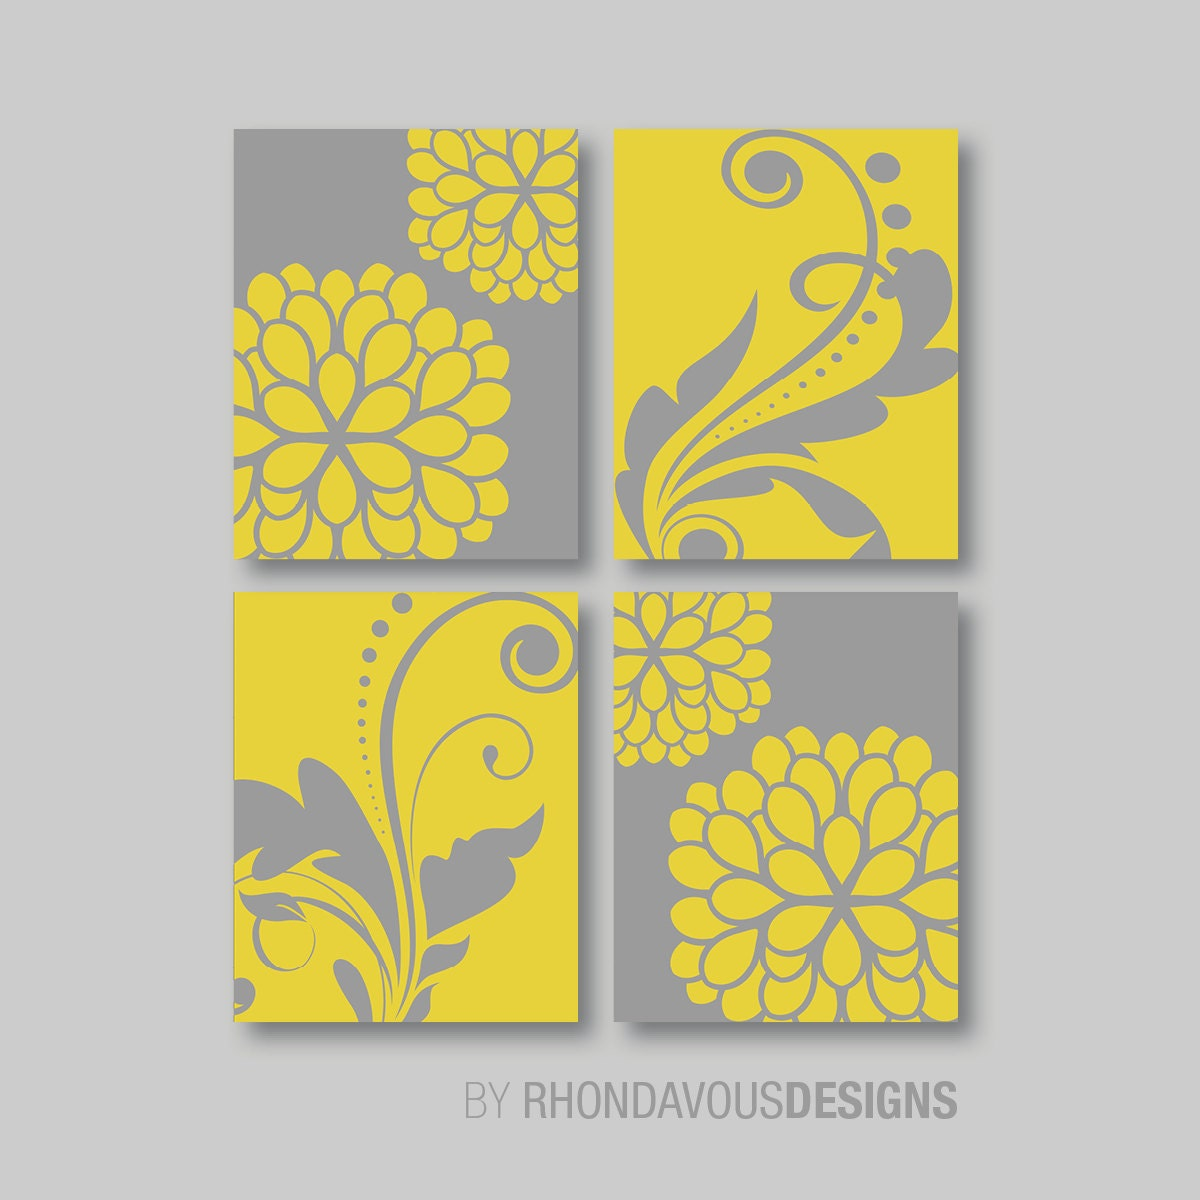 Yellow Gray Wall Print Art - Flower Wall Art - Flower Wall Decor ...